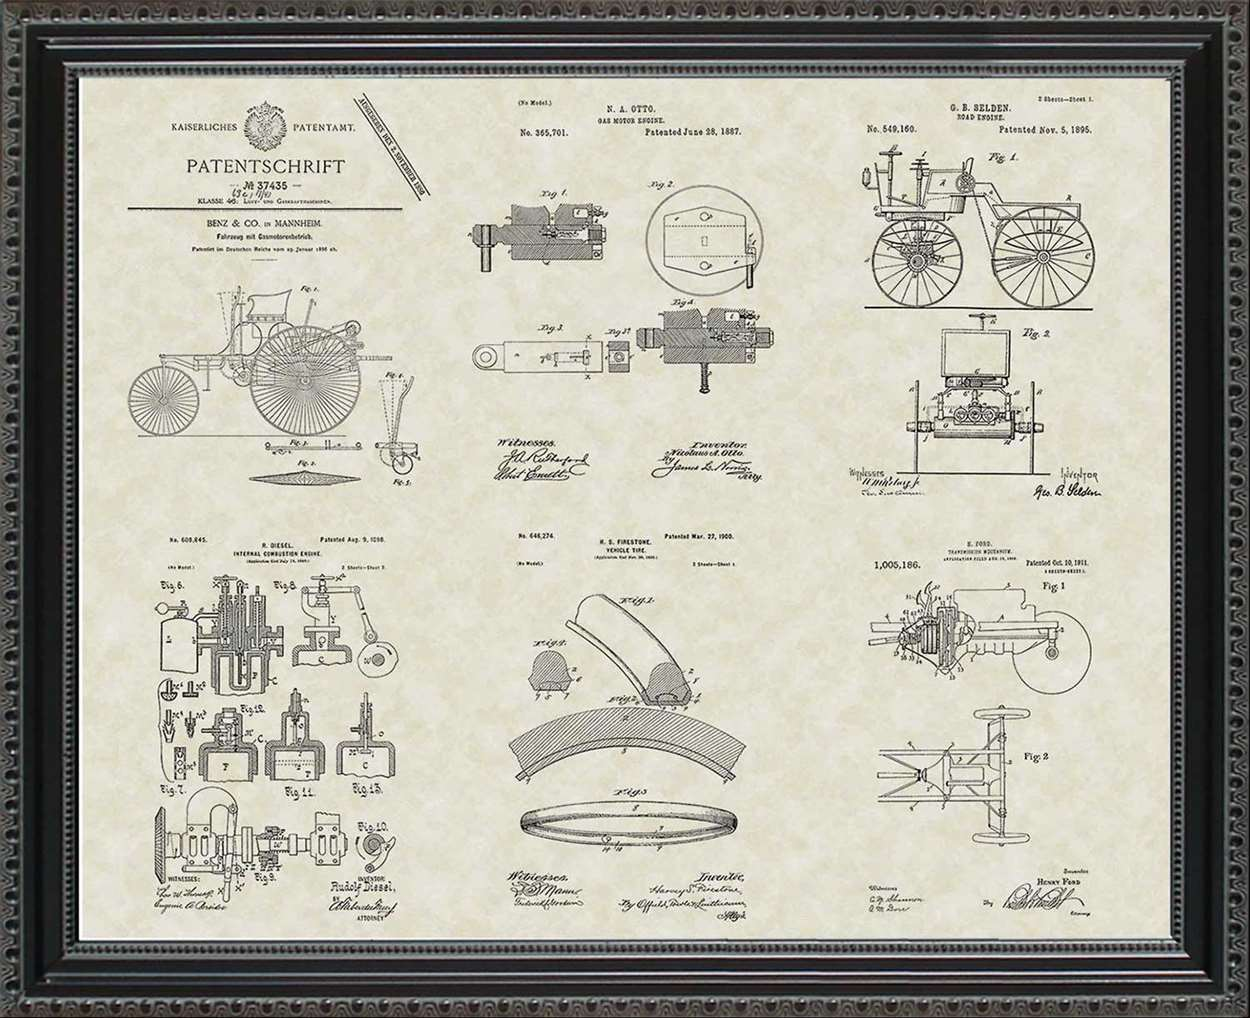 Auto & Mechanic Patents, 20x24